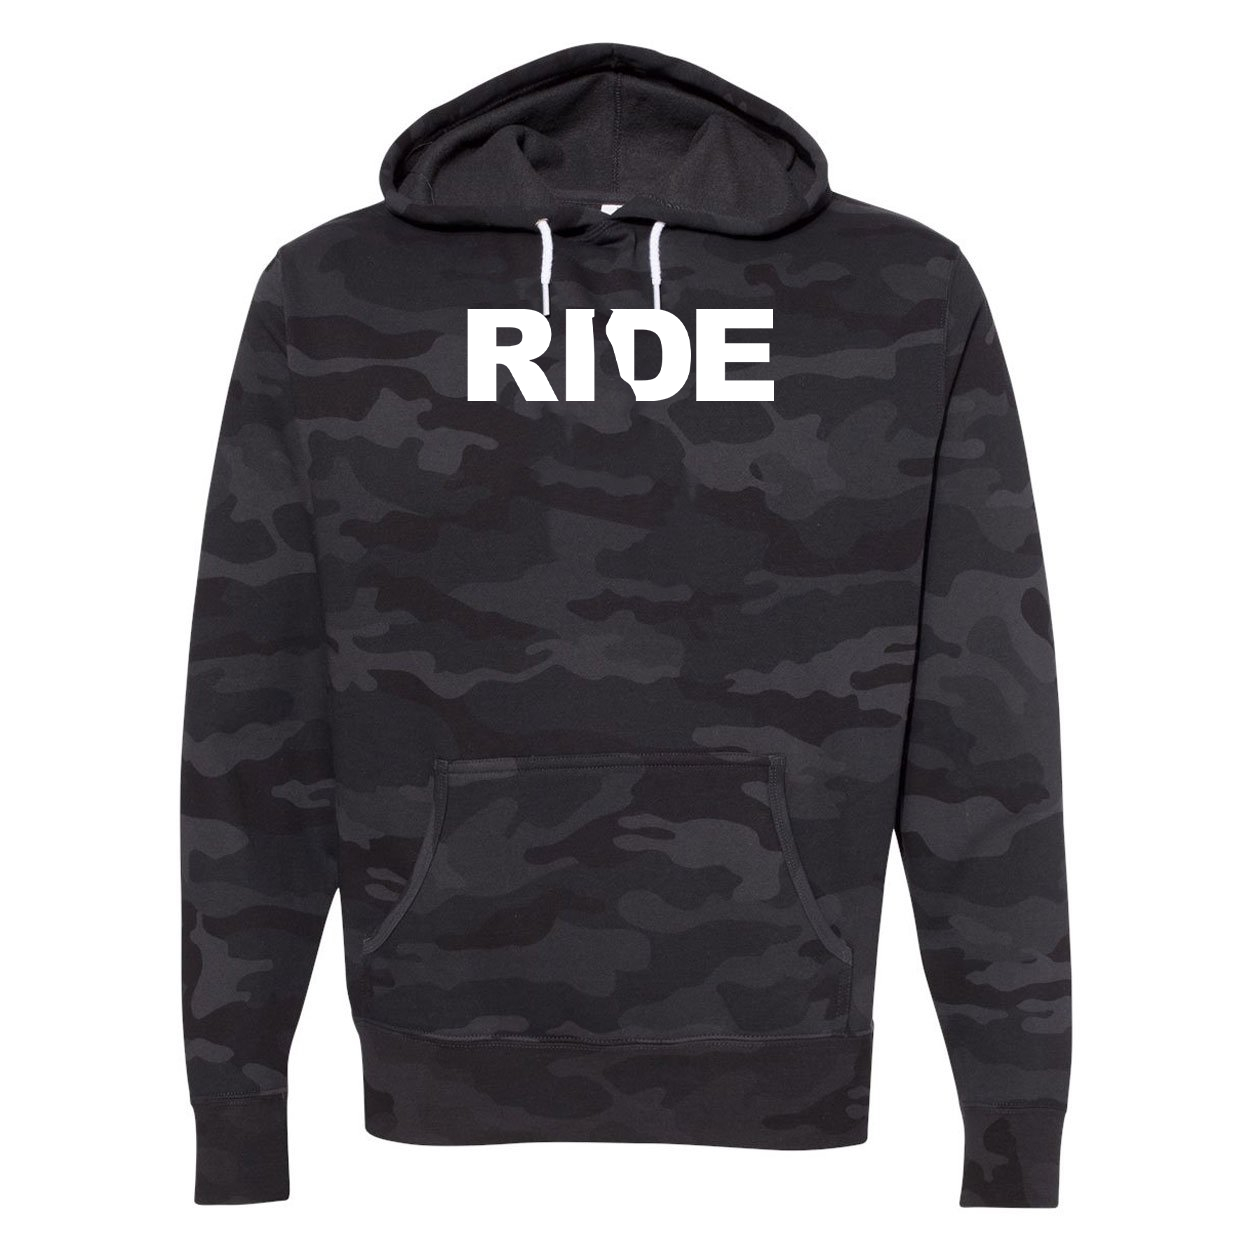 Ride Delaware Classic Unisex Hooded Sweatshirt Black Camo (White Logo)